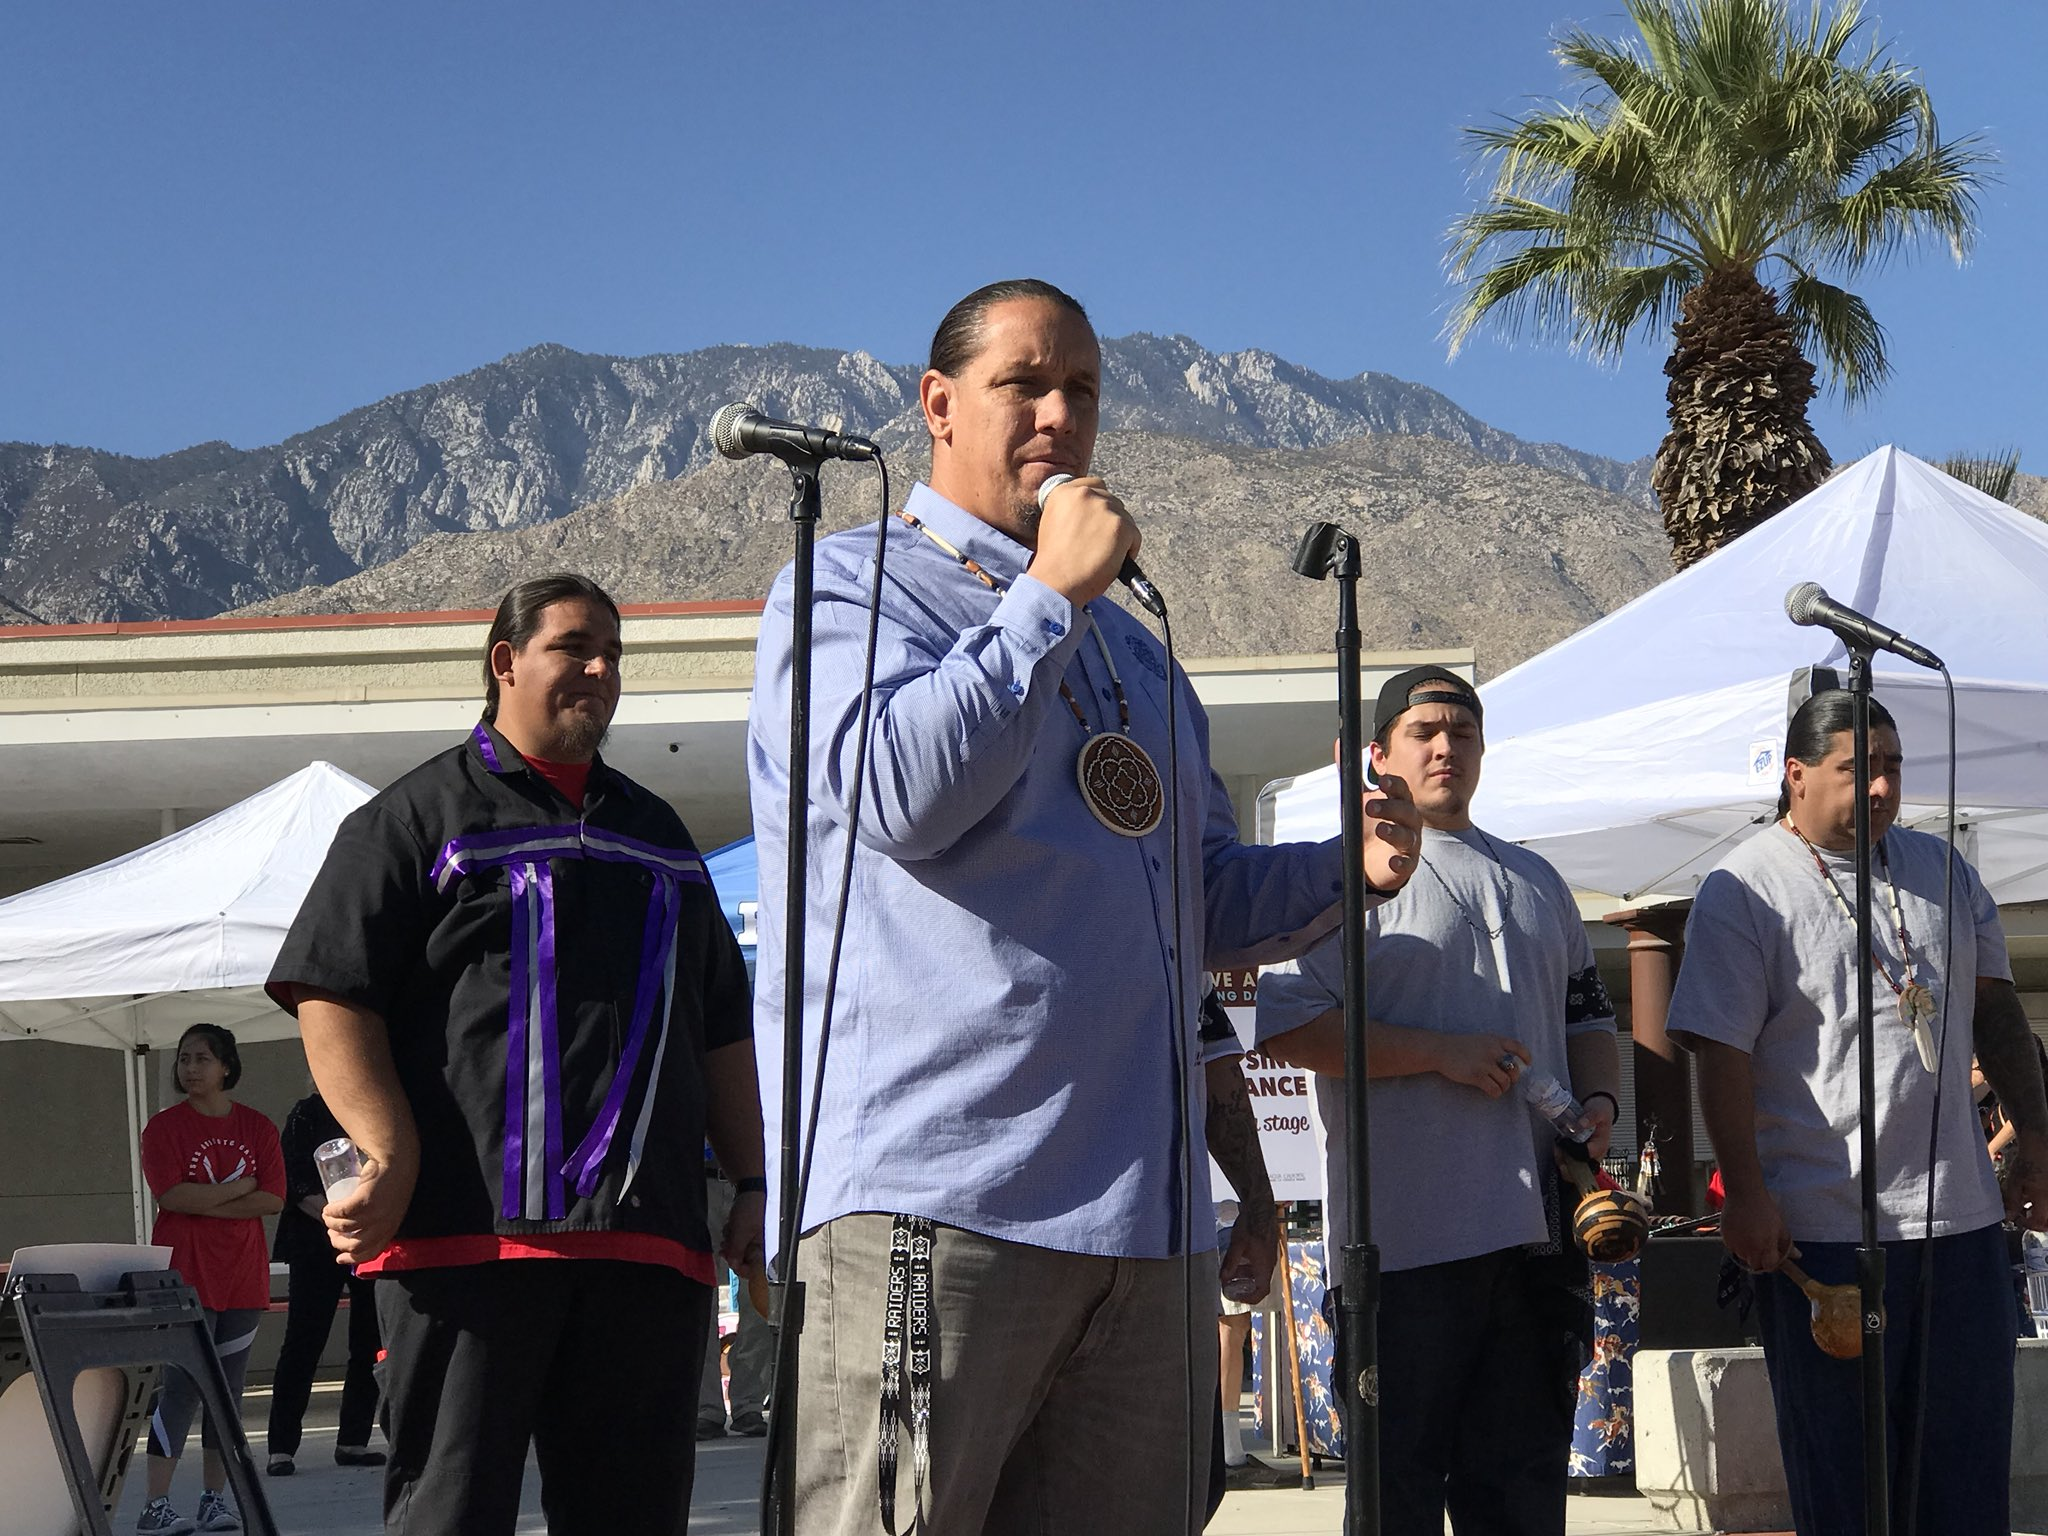 Agua Caliente Band clears big hurdle in battle to protect groundwater in California